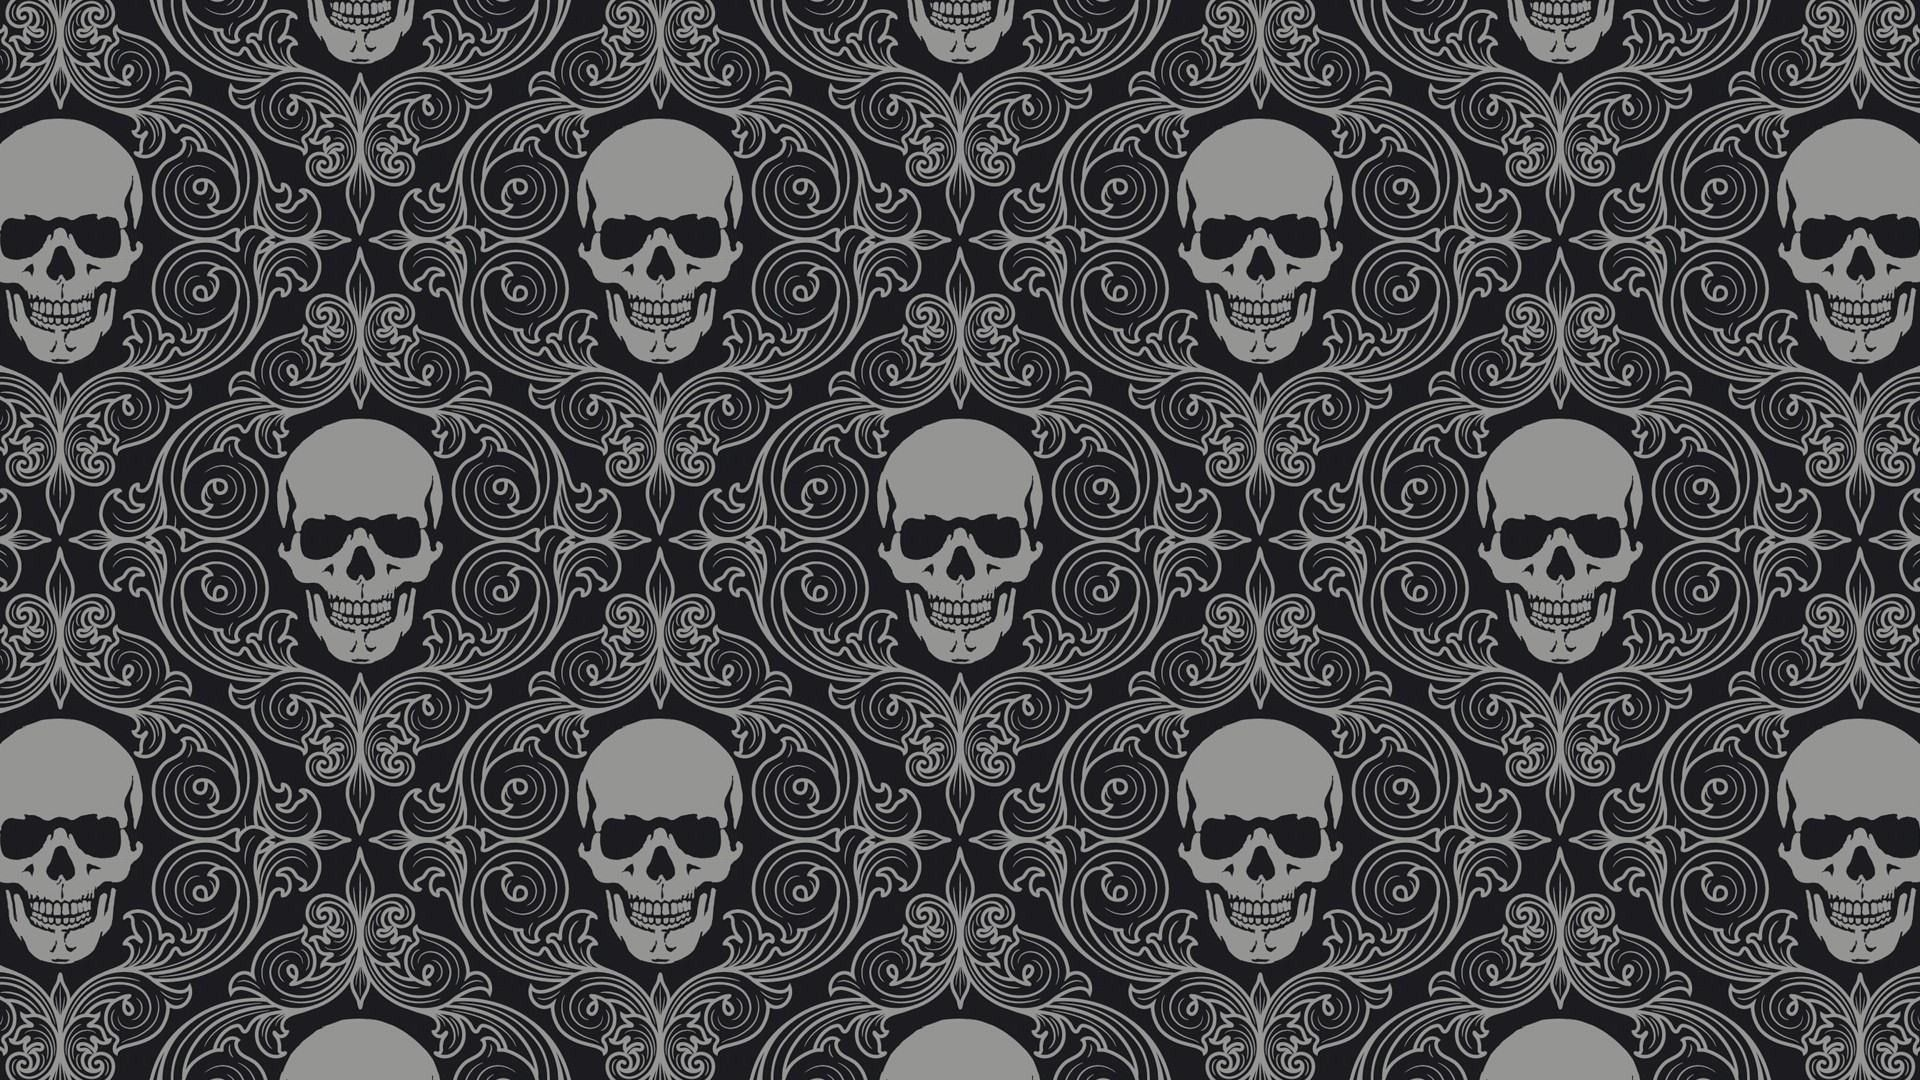 general texture skulls symmetry monochrome digital art